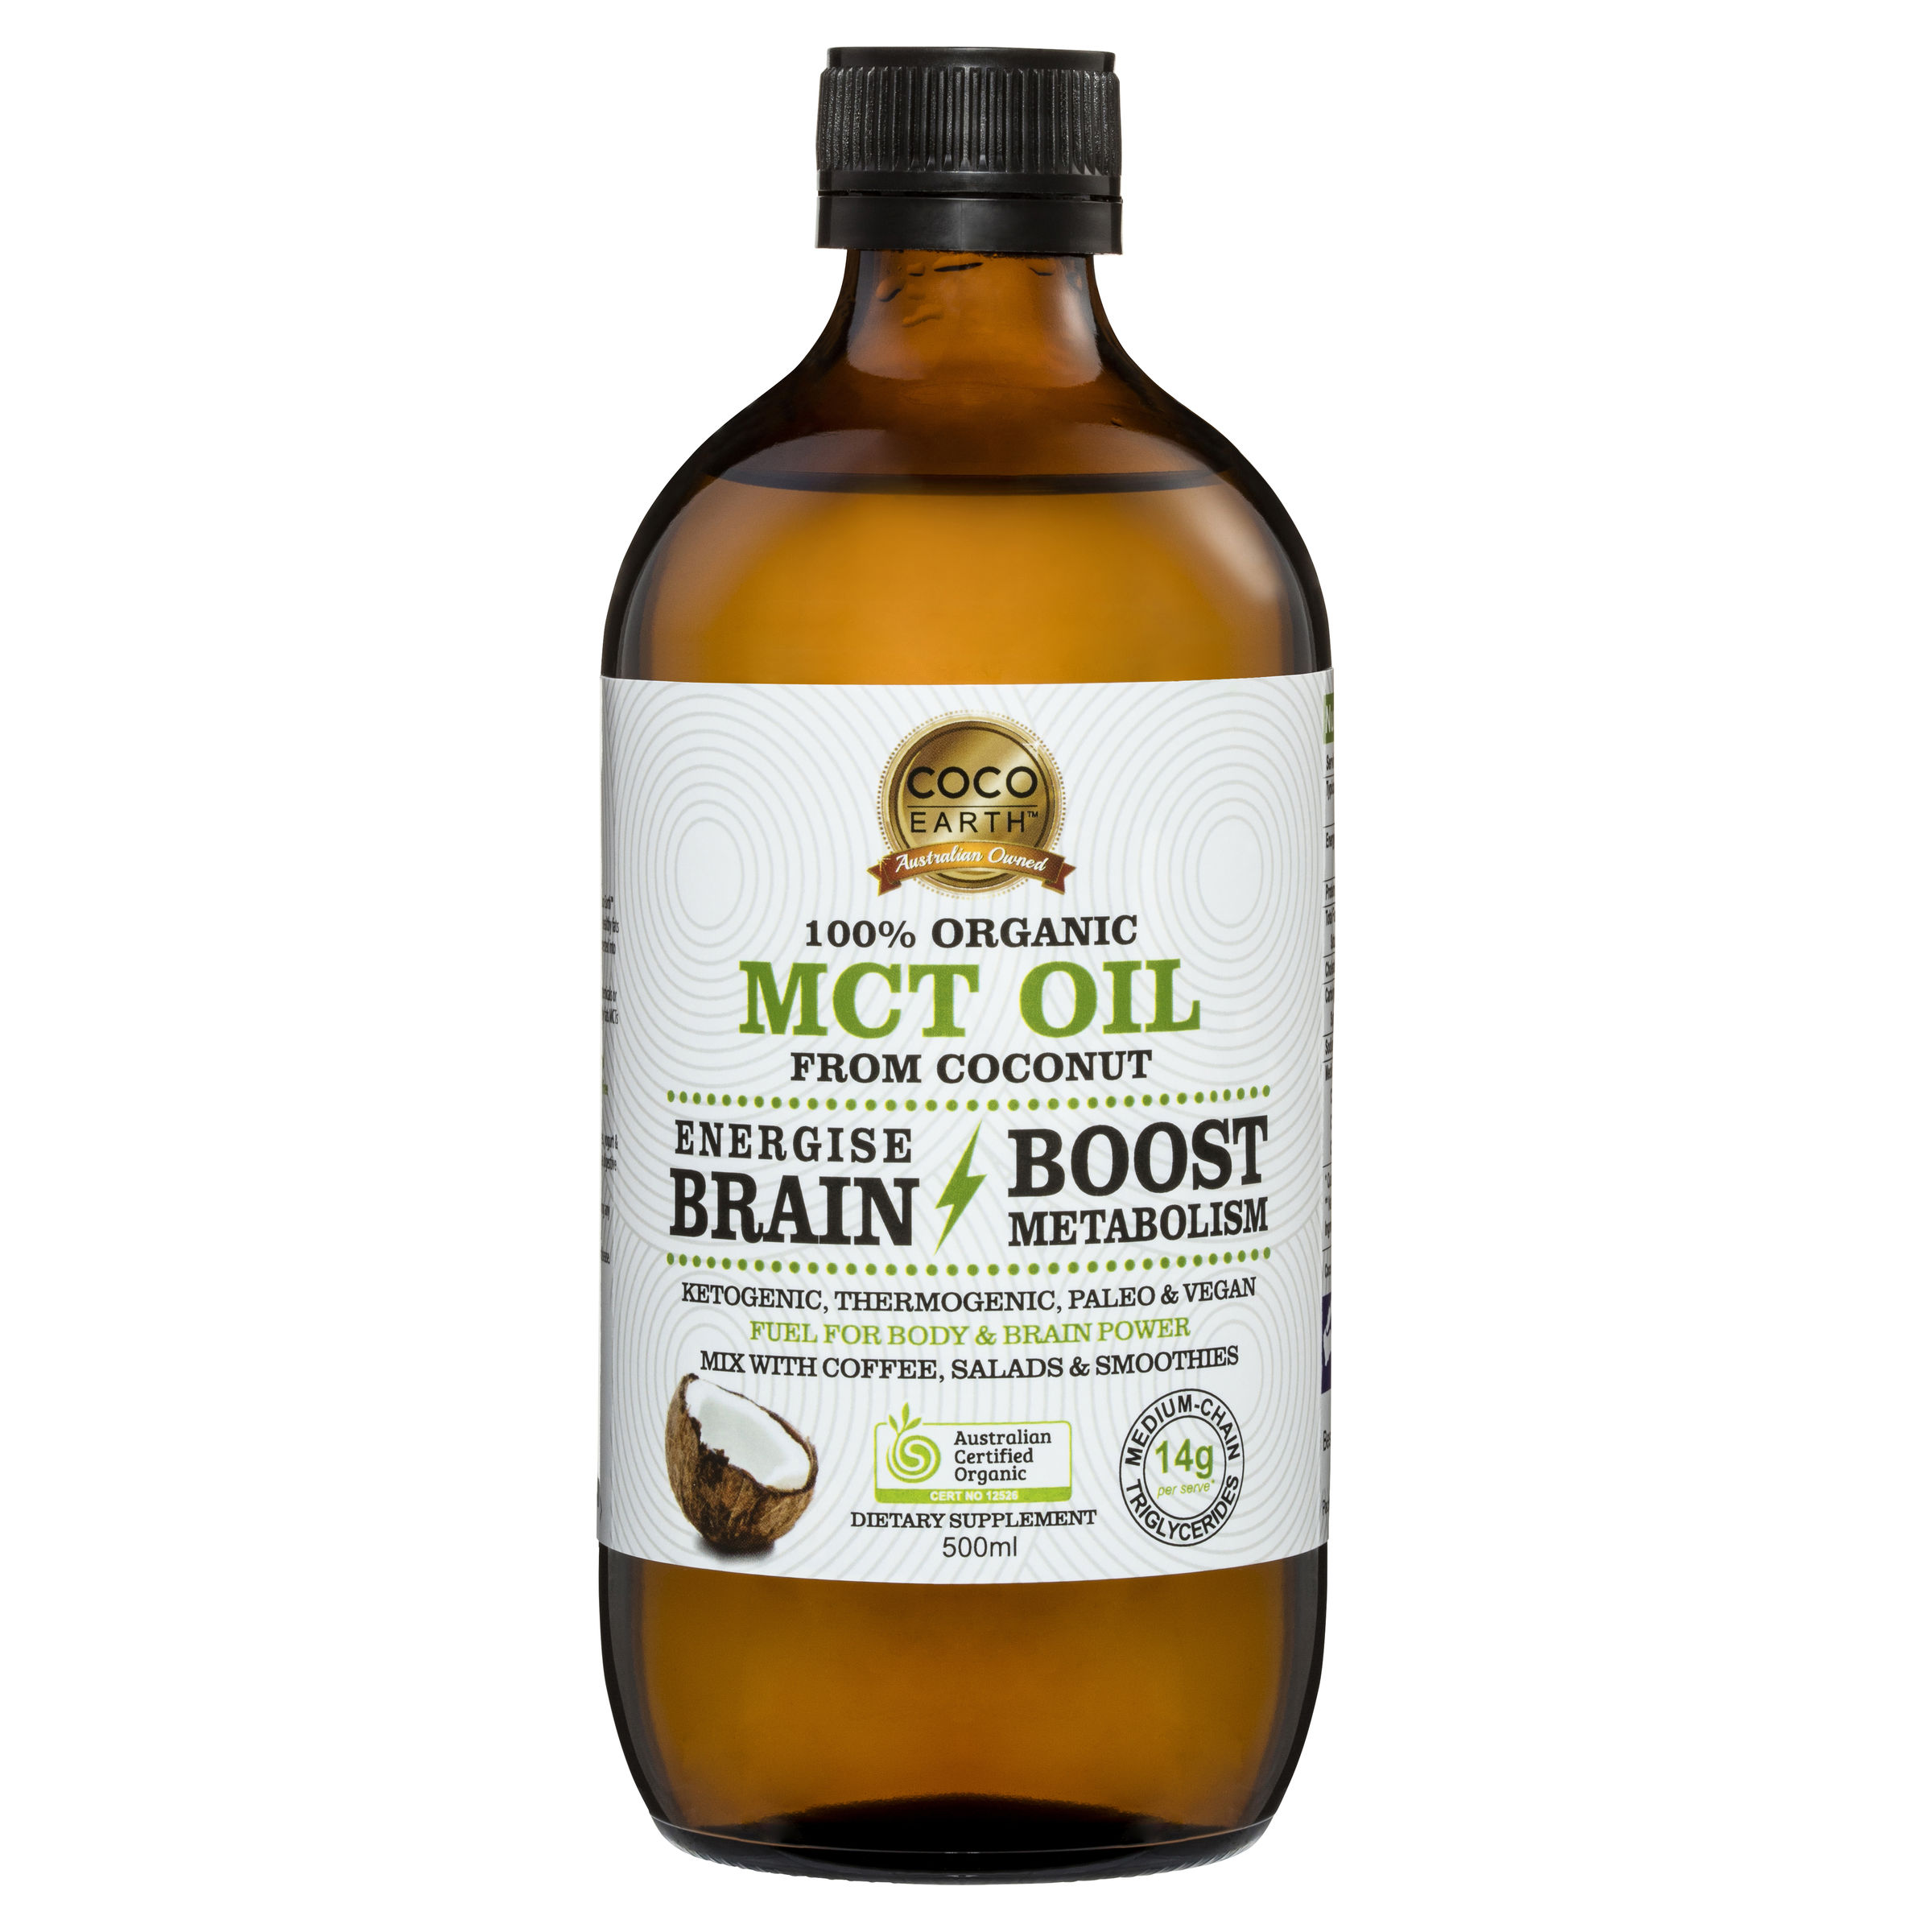 Coco Earth Organic coconut MCT Oil 500mL